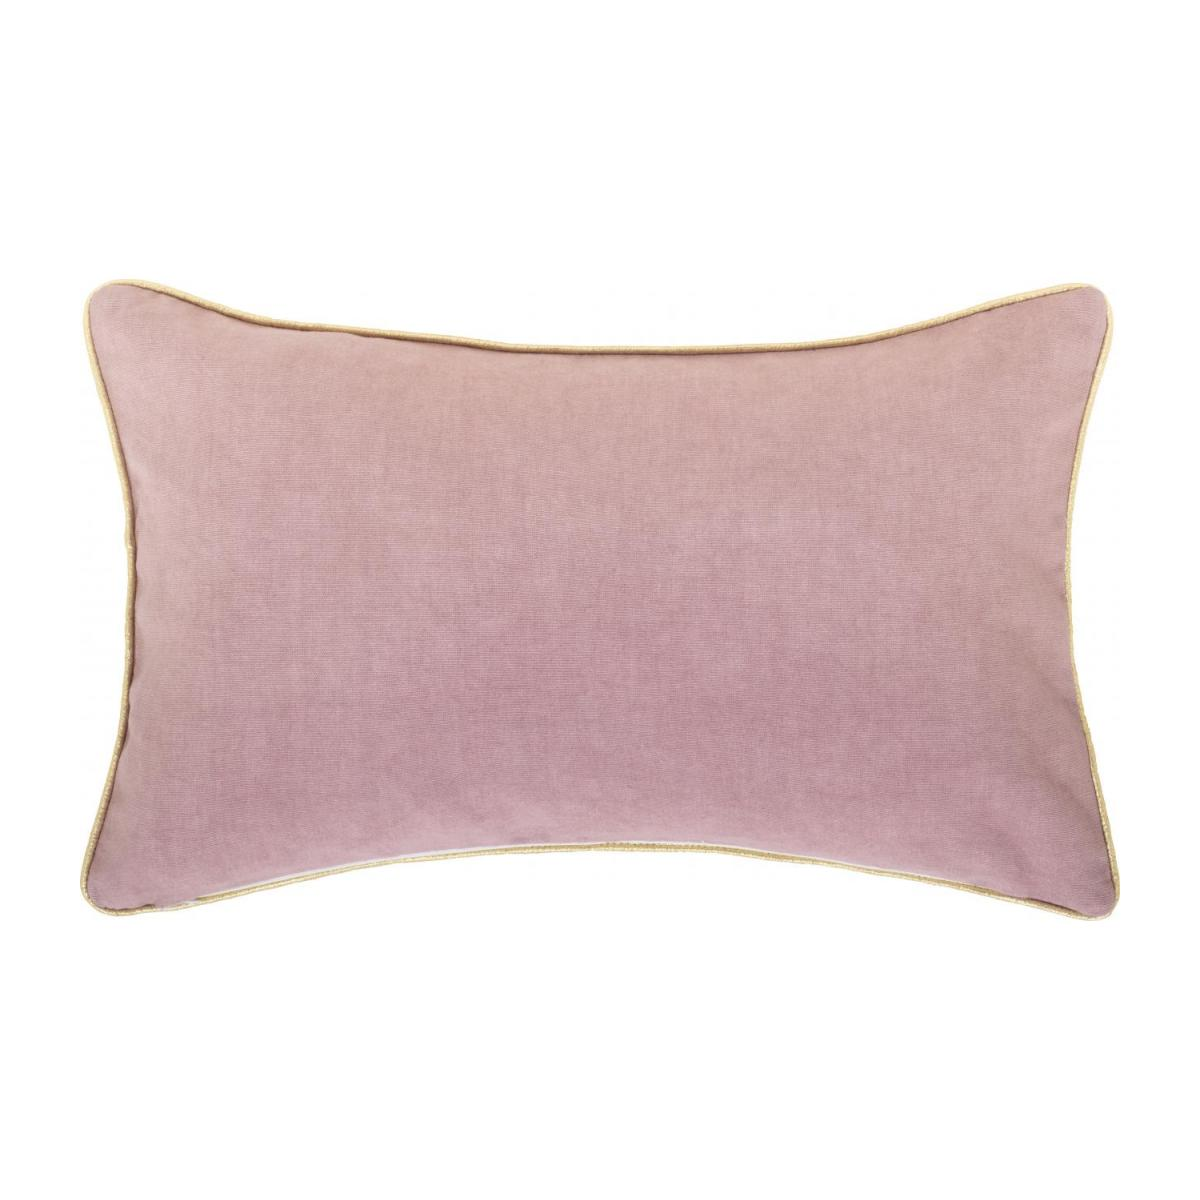 PROSPER/COUSSIN BRODE YEUX 30X50  n°4